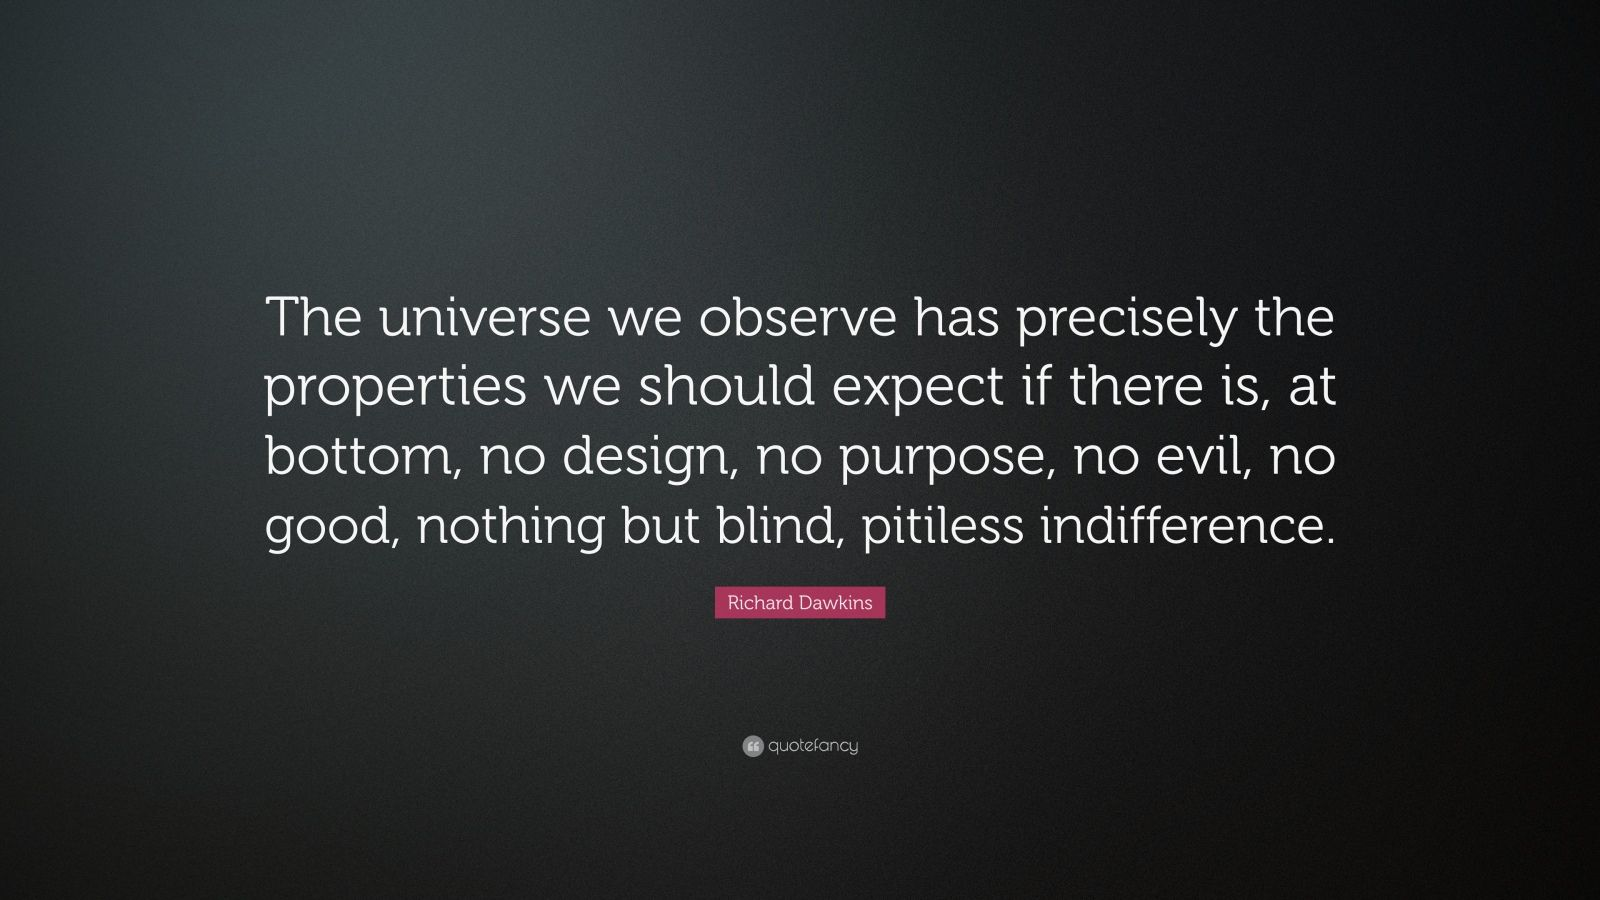 "Richard Dawkins Quote: ""The universe we observe has precisely the properties we should expect if there is, at bottom, no design, no purpose, no evil, no good, nothing but blind, pitiless indifference."""